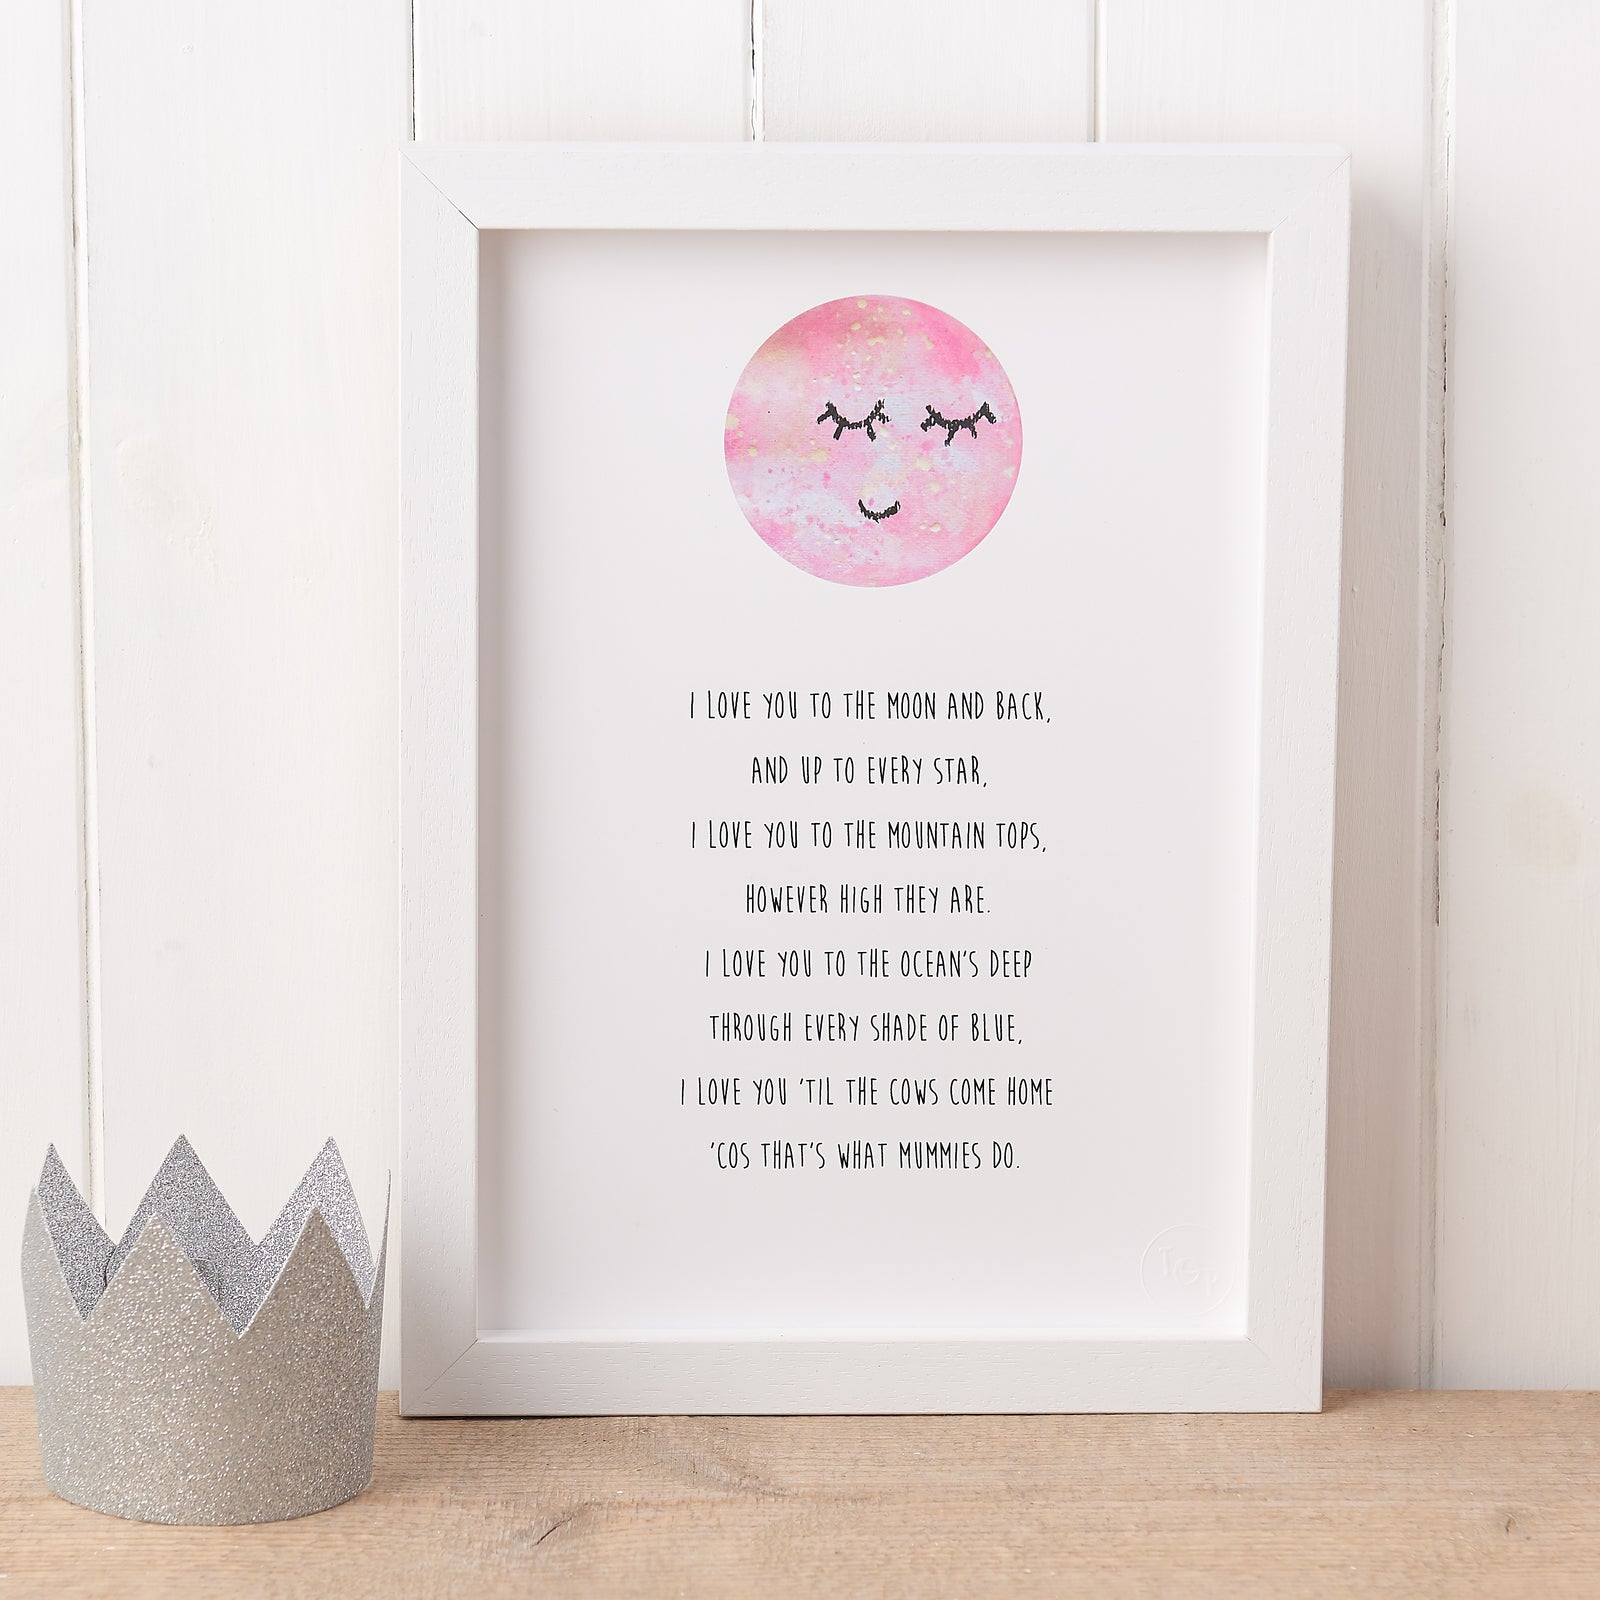 Love You To The Moon Nursery Poem Print The Original Poet A darkness of sharpness � !!! love you to the moon nursery poem print